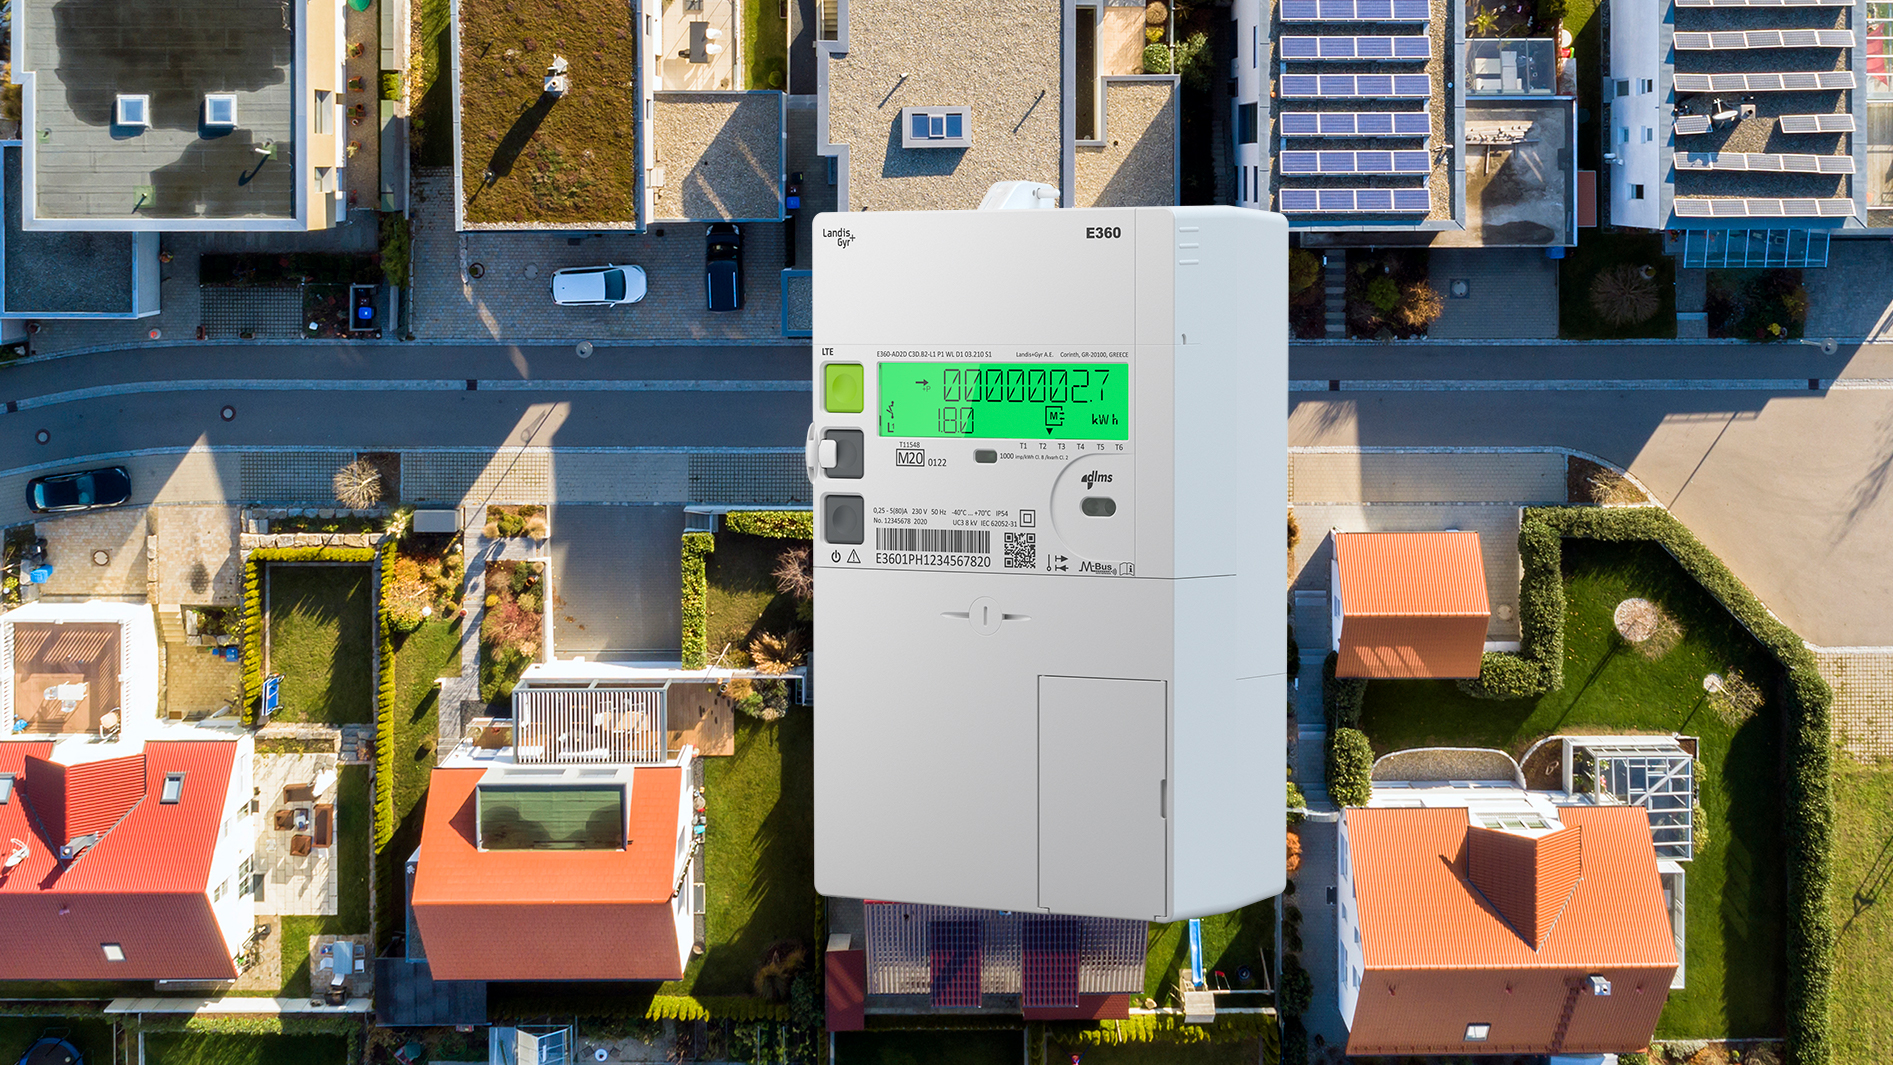 The E360 is a smart residential meter for the IoT world of today and tomorrow